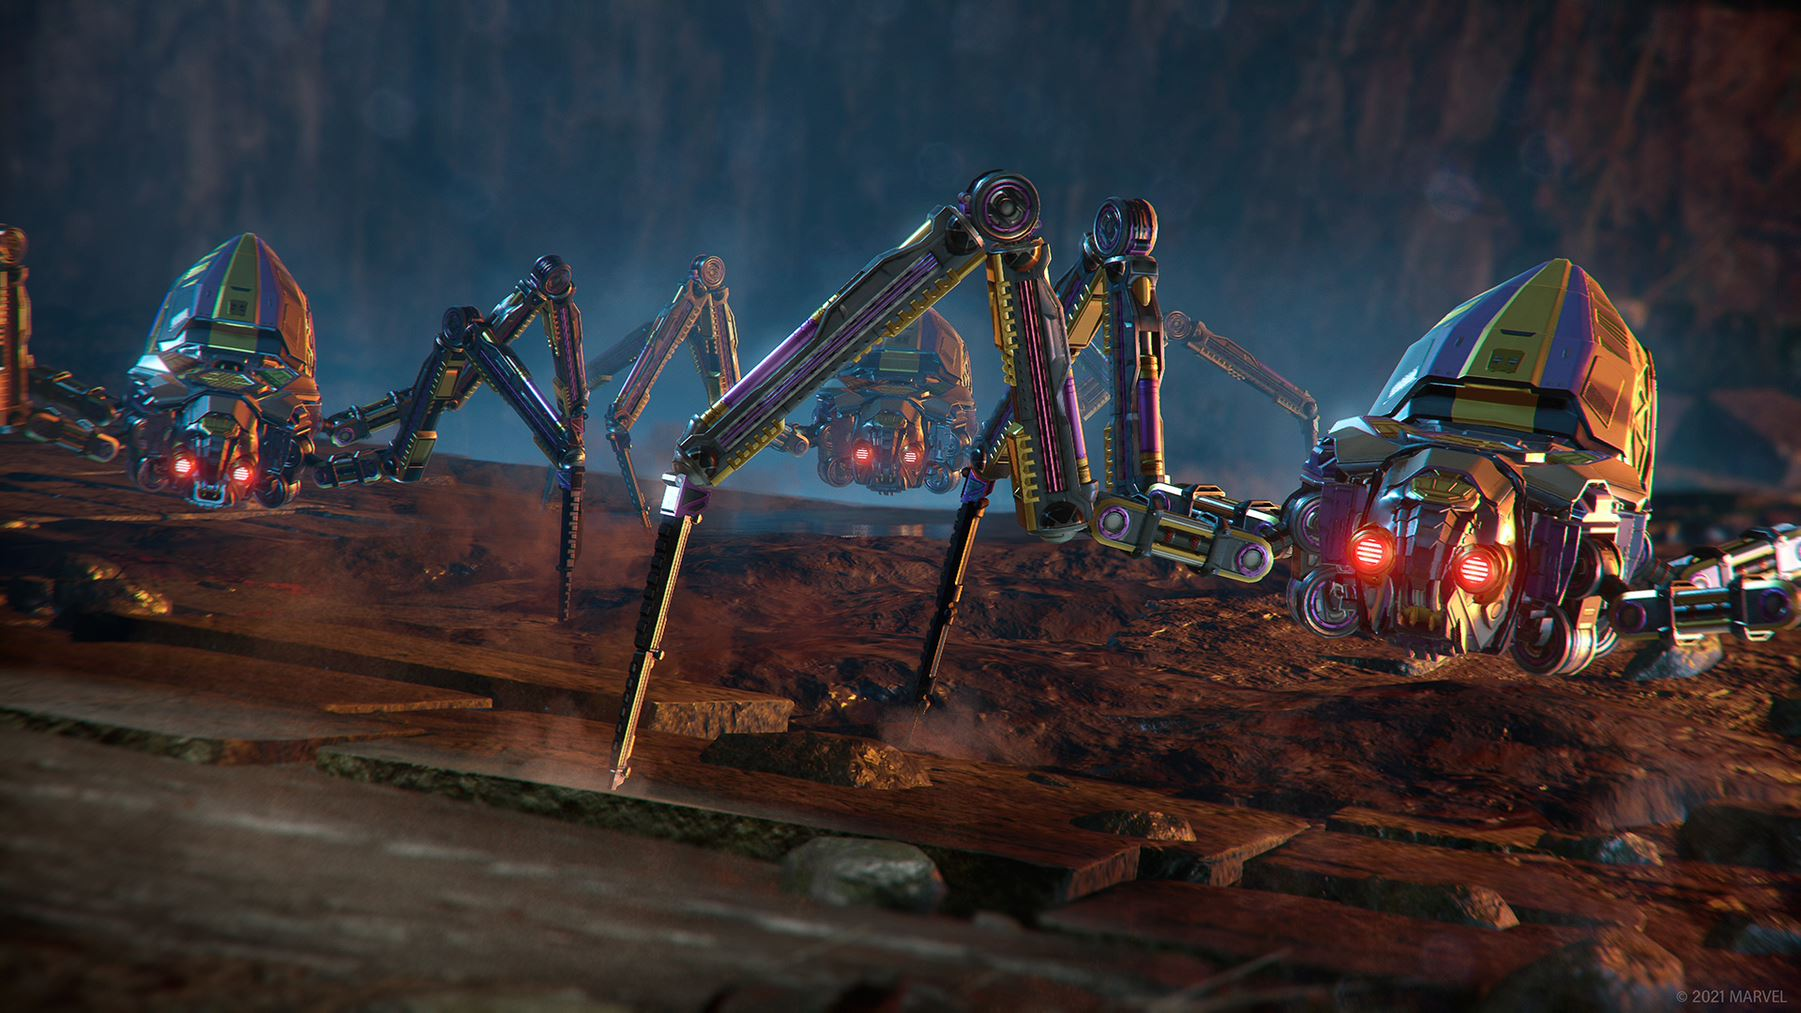 Concept art of Klaue's arachnid-like Scout Crawlers. They each have four knife-sharp legs and glowing red eyes. They approach our Heroes from the recesses of a Wakandan cave.